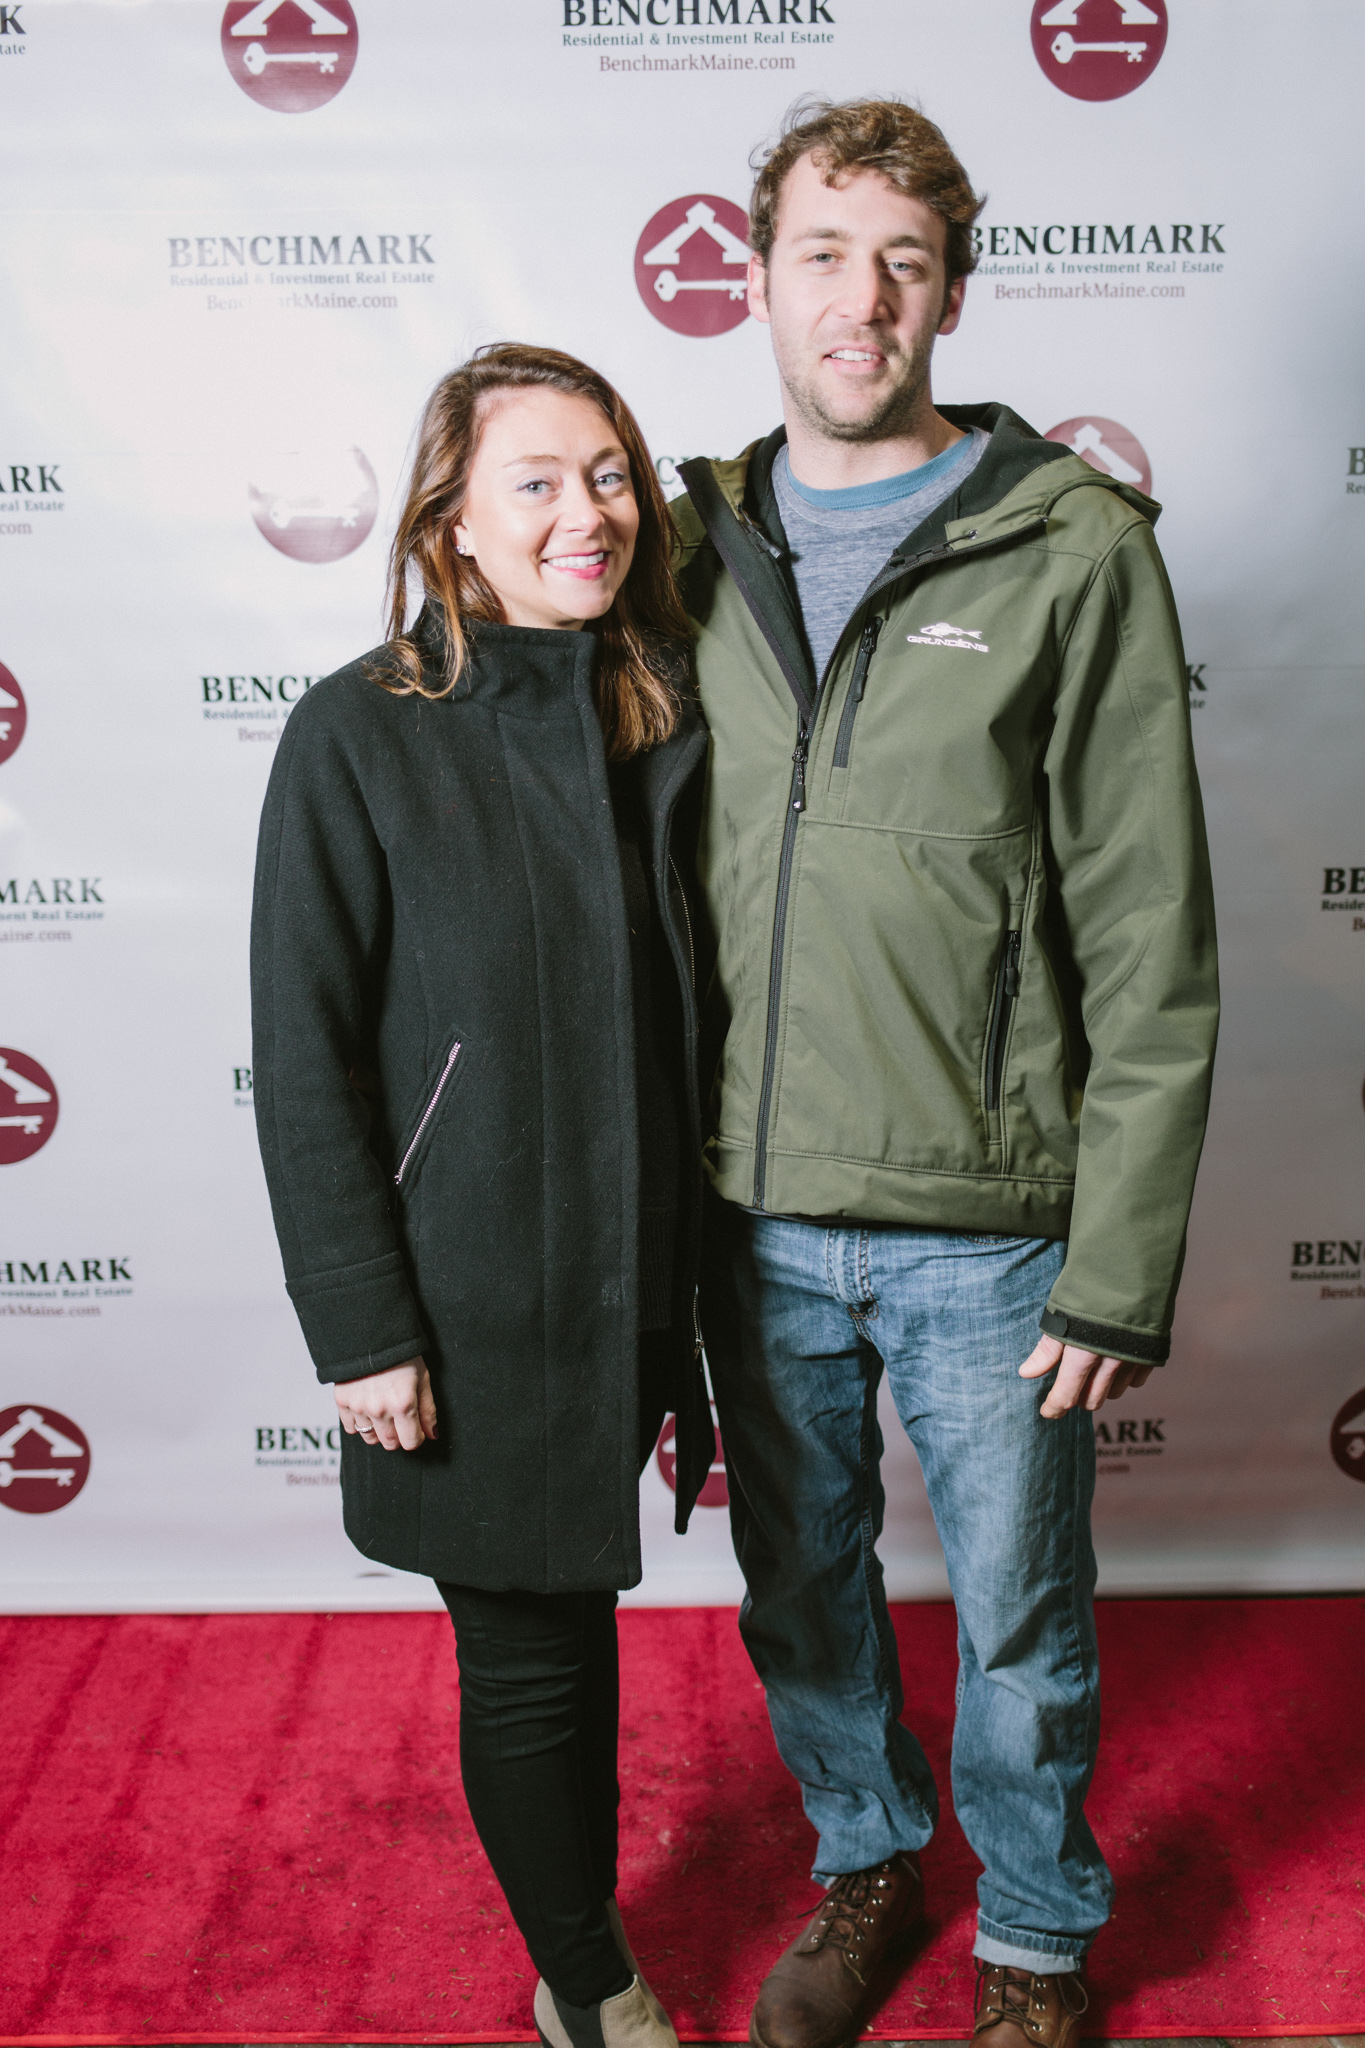 Benchmark_Holiday_Party_SR-039.jpg